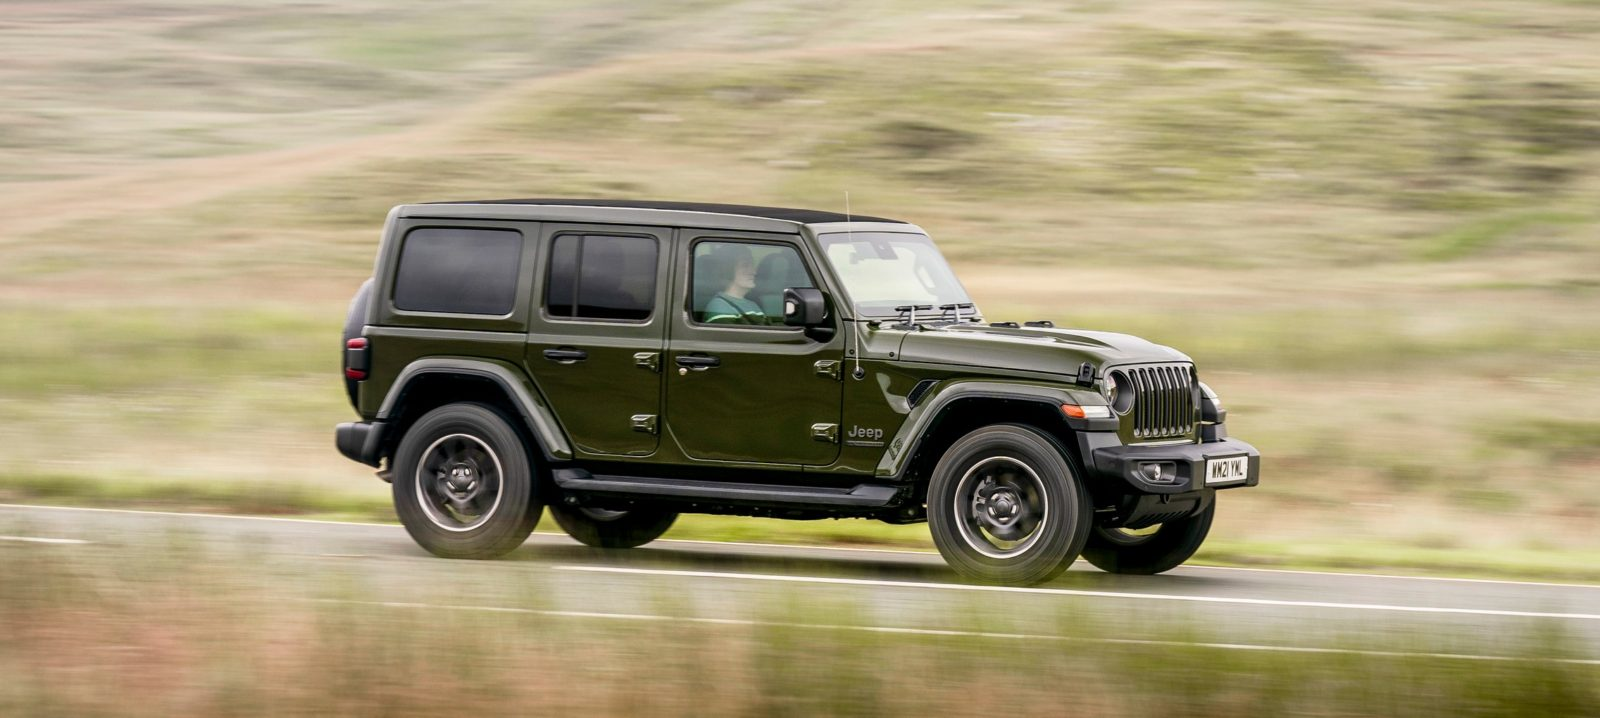 2021-jeep-wrangler-hits-uk-with-range-of-new-colors-and-49,450-starting-price